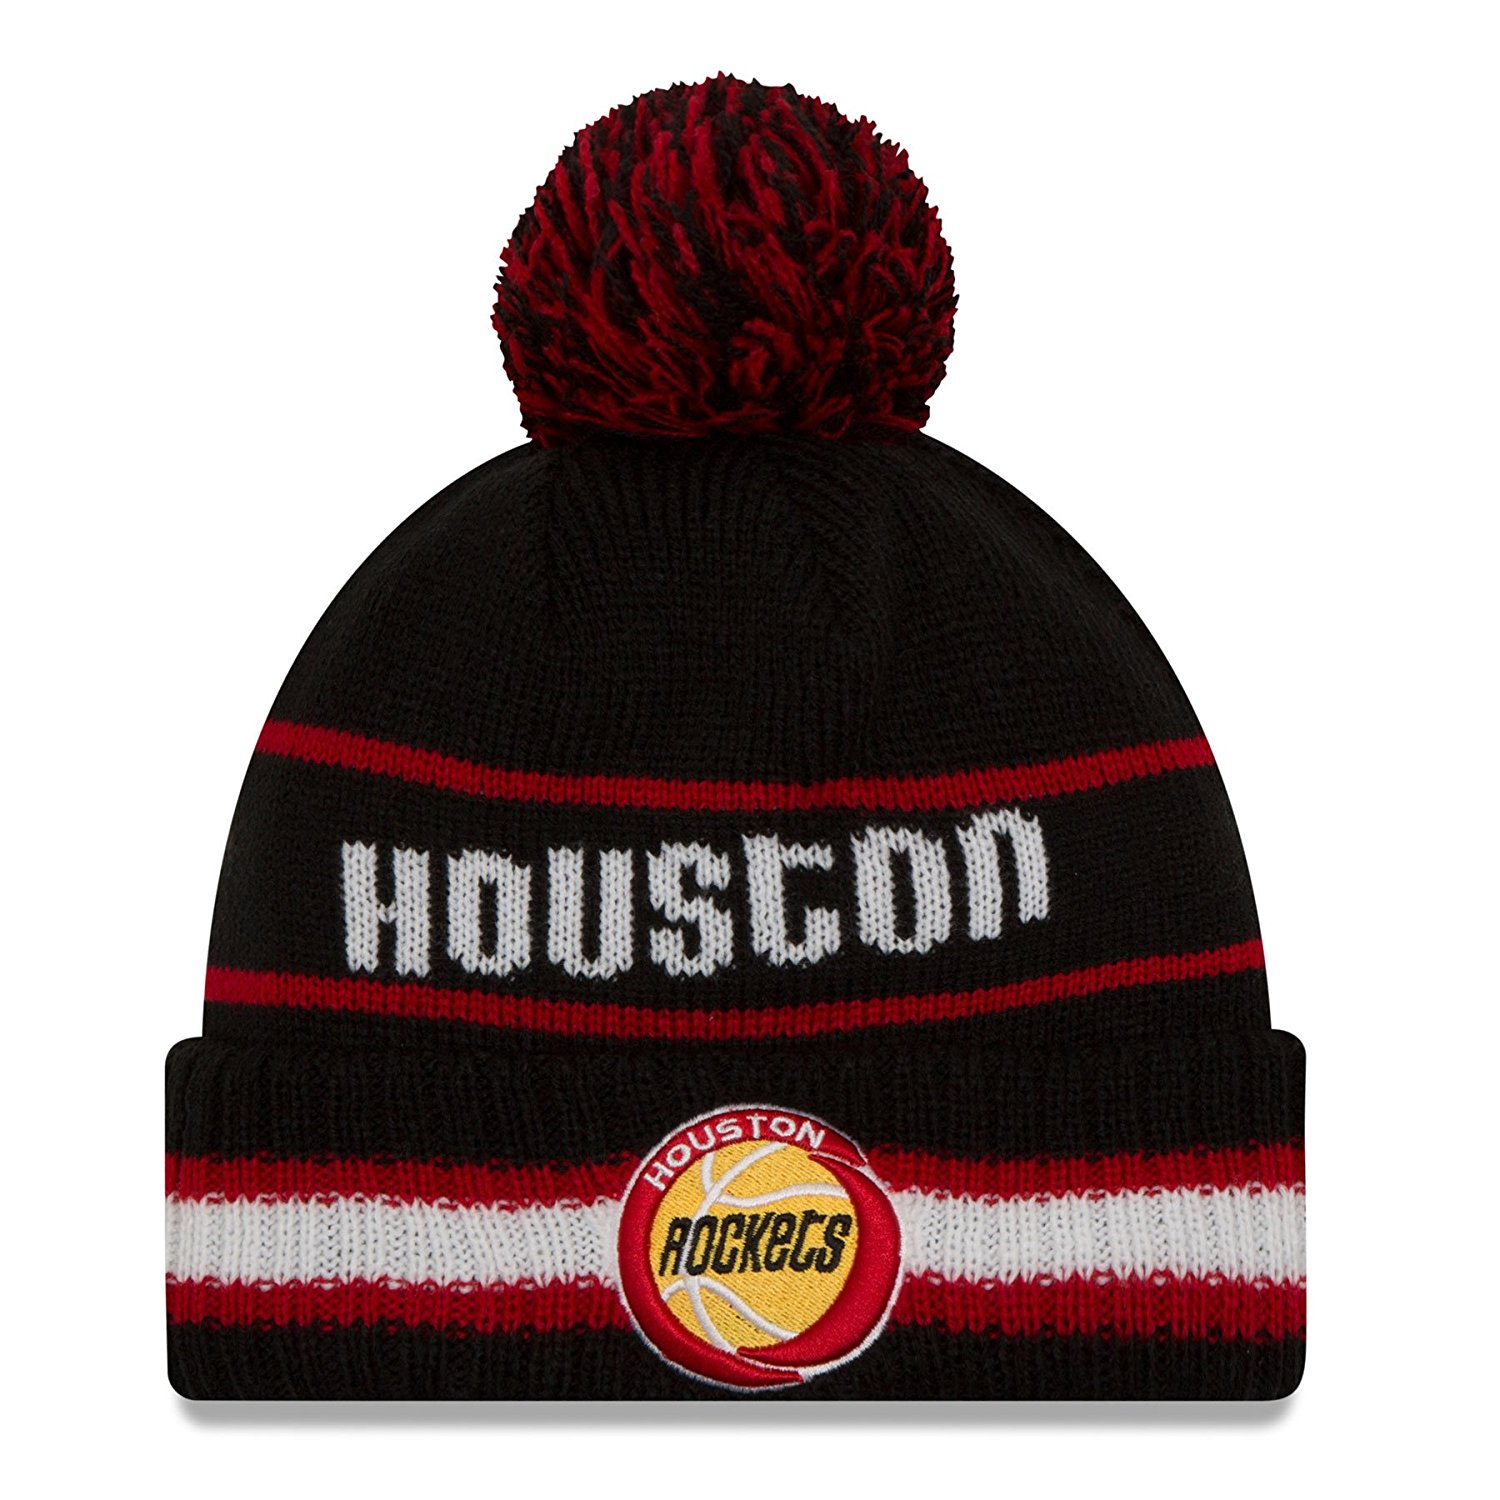 307c6966 Get Quotations · Houston Rockets New Era NBA Cuffed Vintage Select Pom Knit  Hat